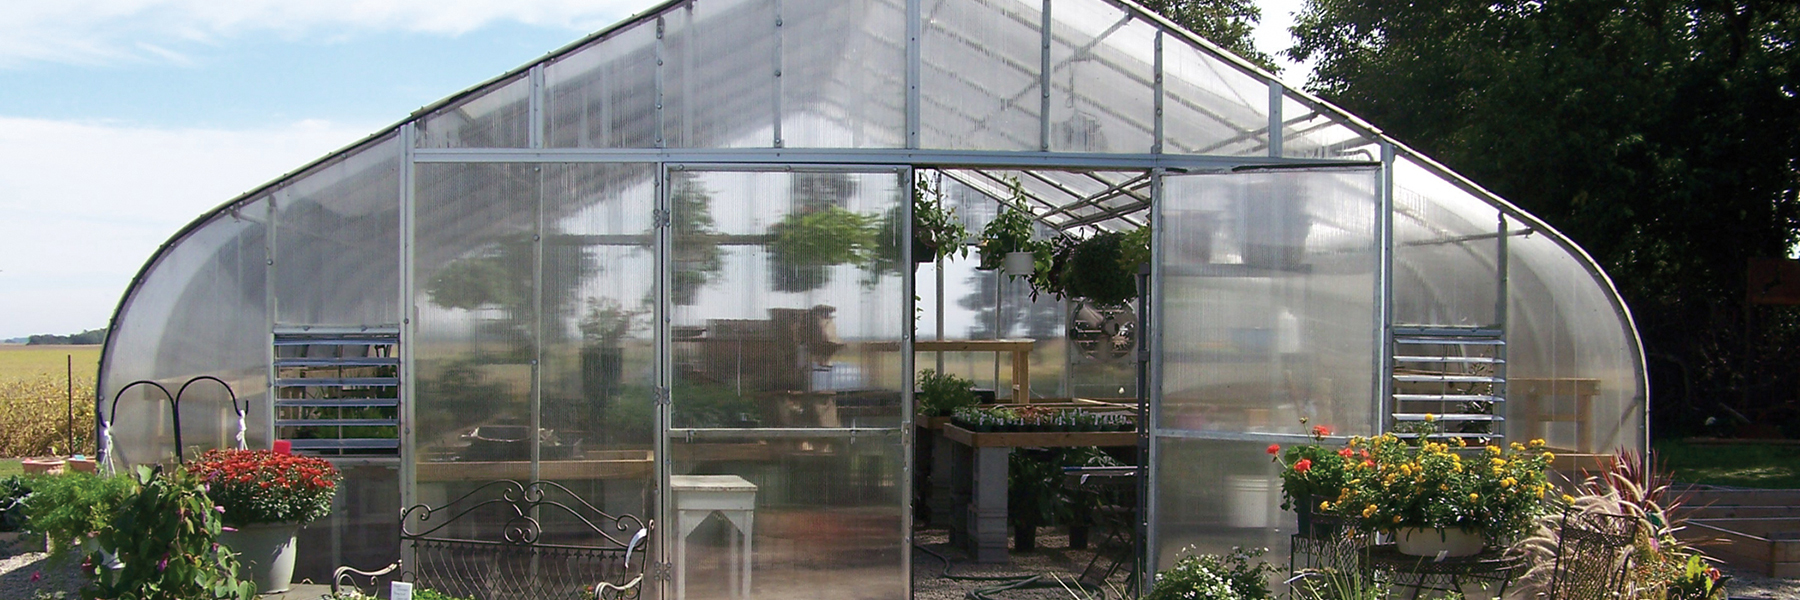 backyard flower greenhouse